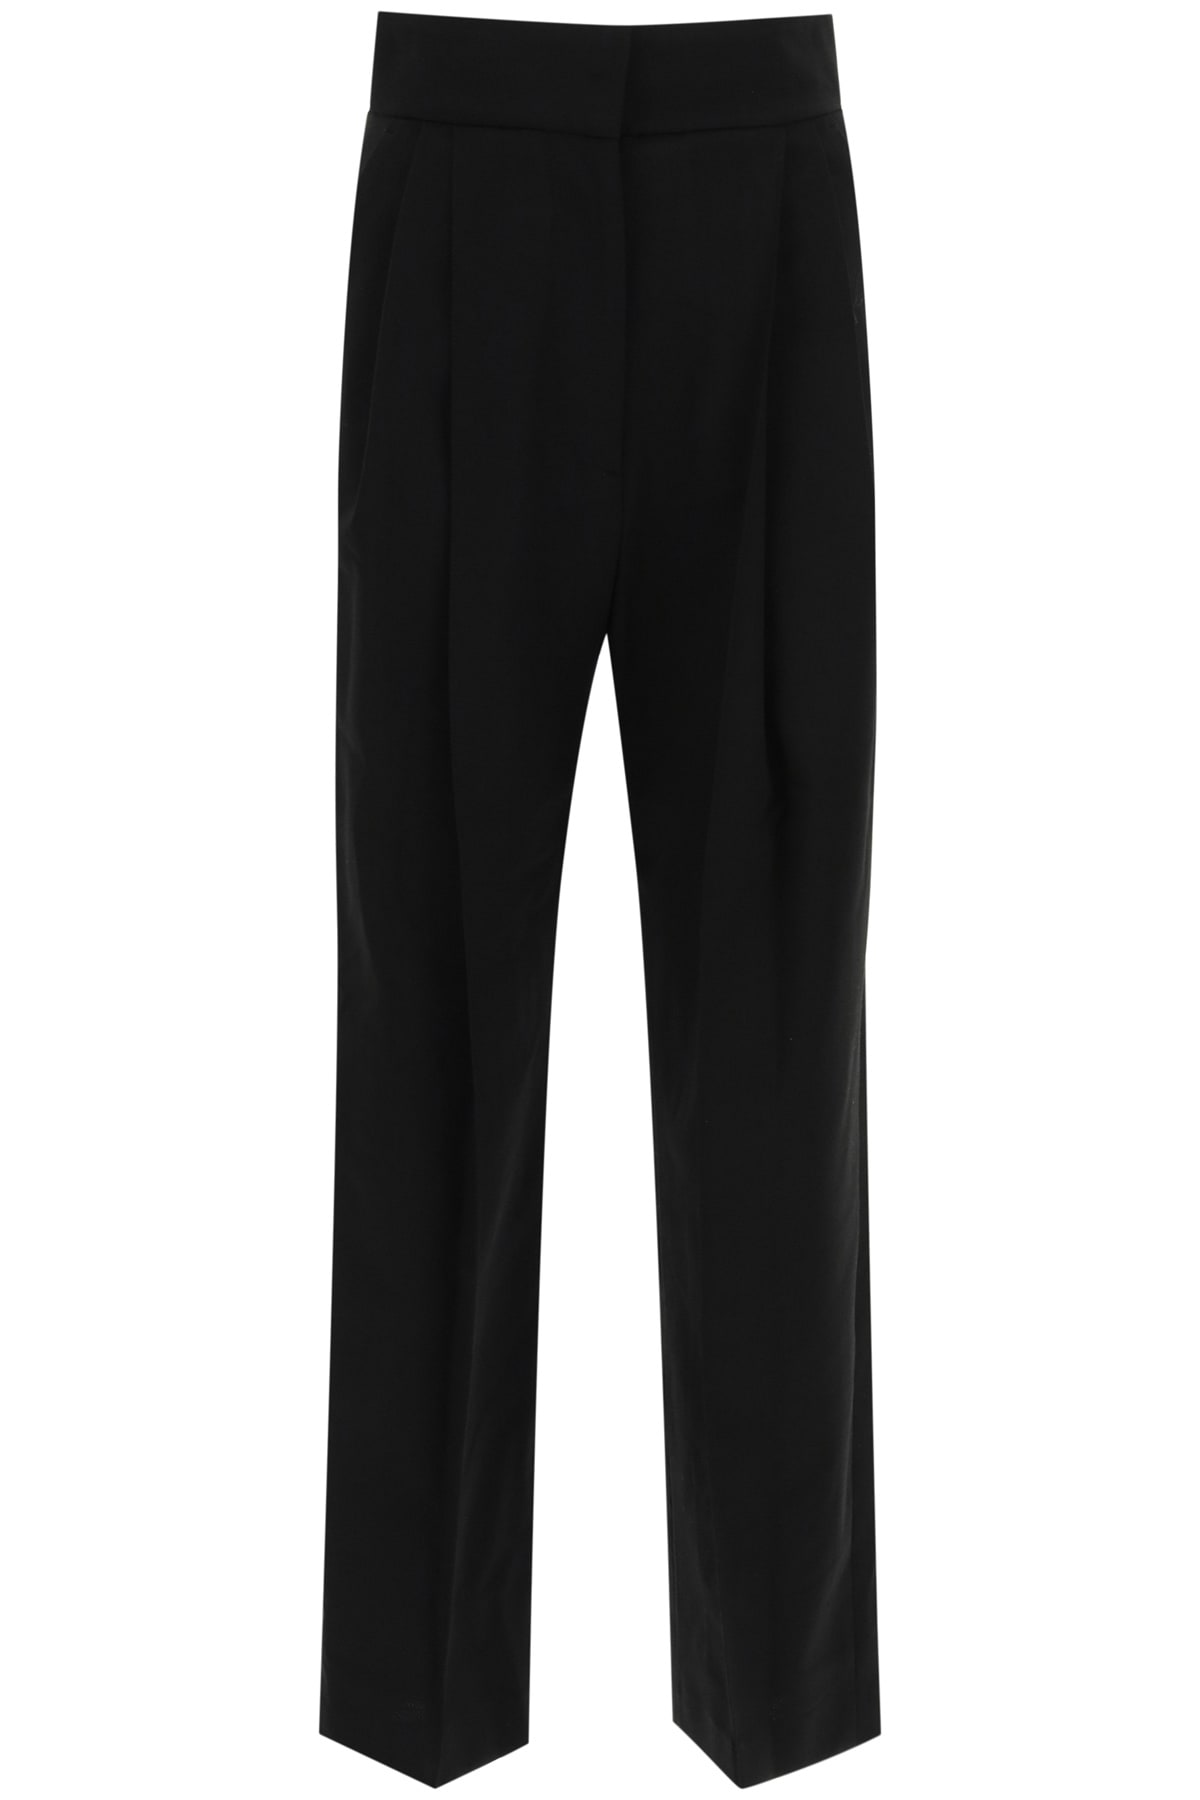 Low Classic PINTUCK TROUSERS WITH PLEATS